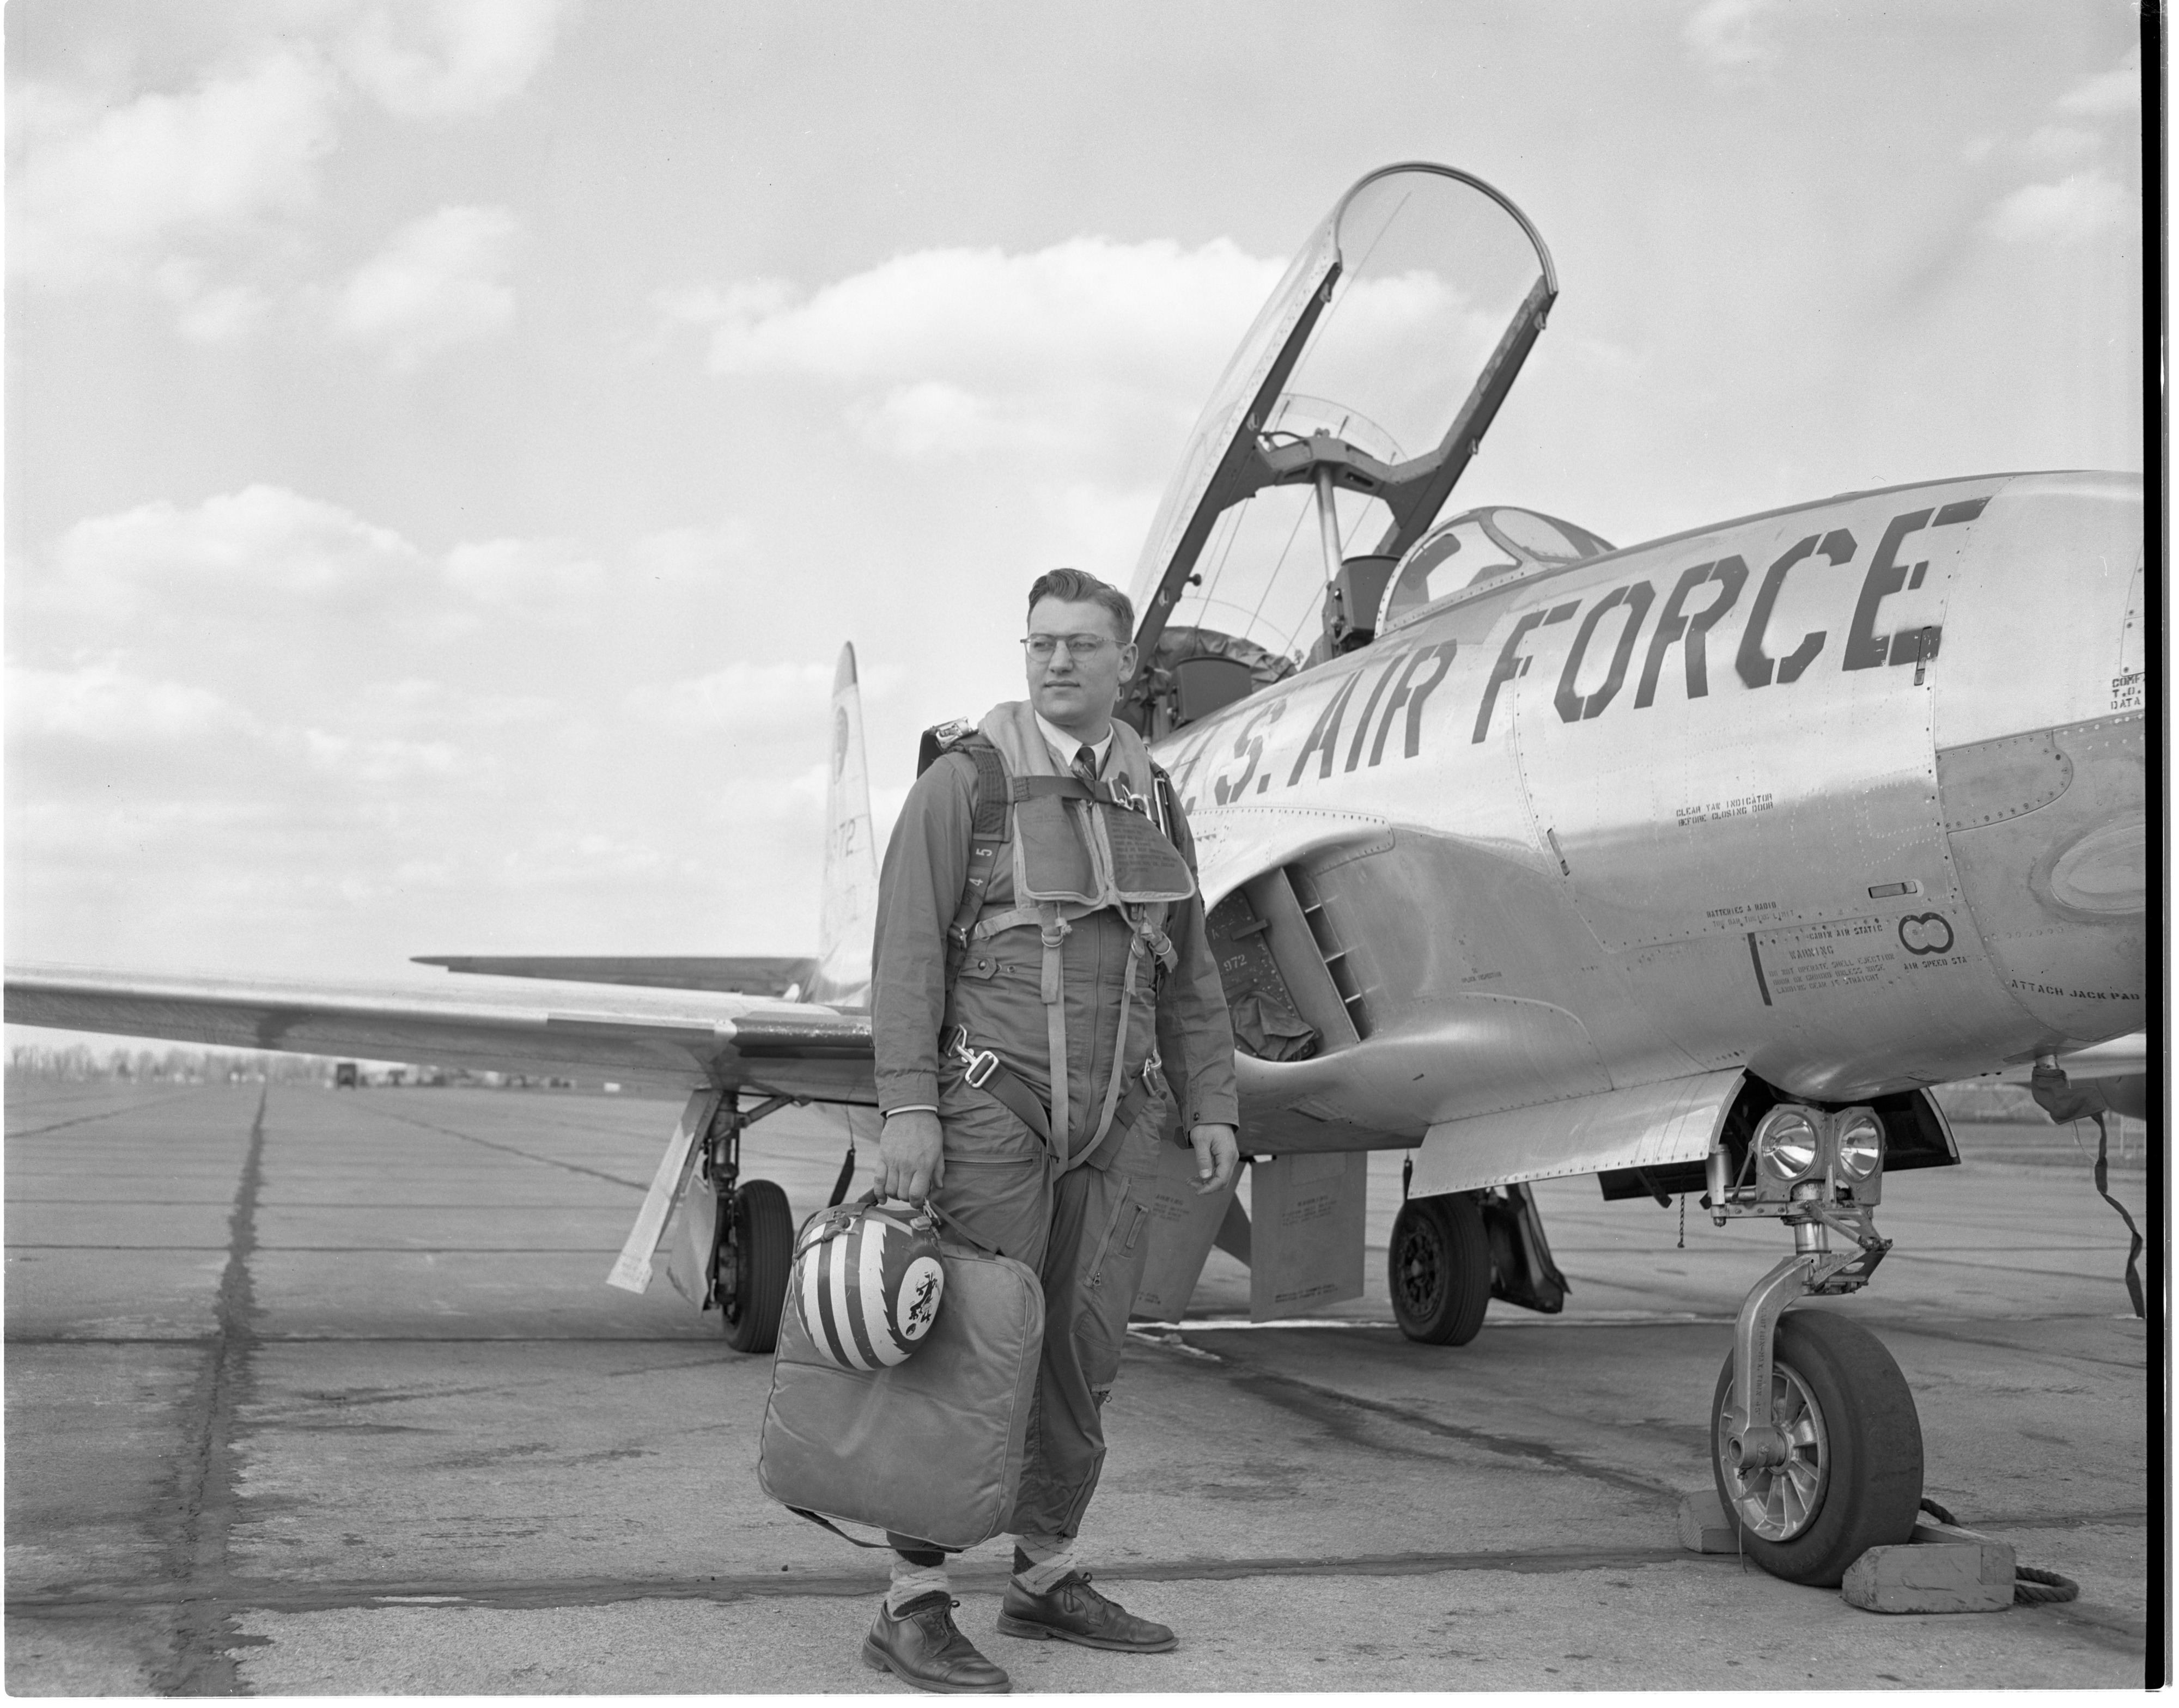 Ann Arbor News Reporter Dick Kerr Poses In Front Of The Air Force T-33 Trainer Jet He Will Take A Ride In, April 1956 image